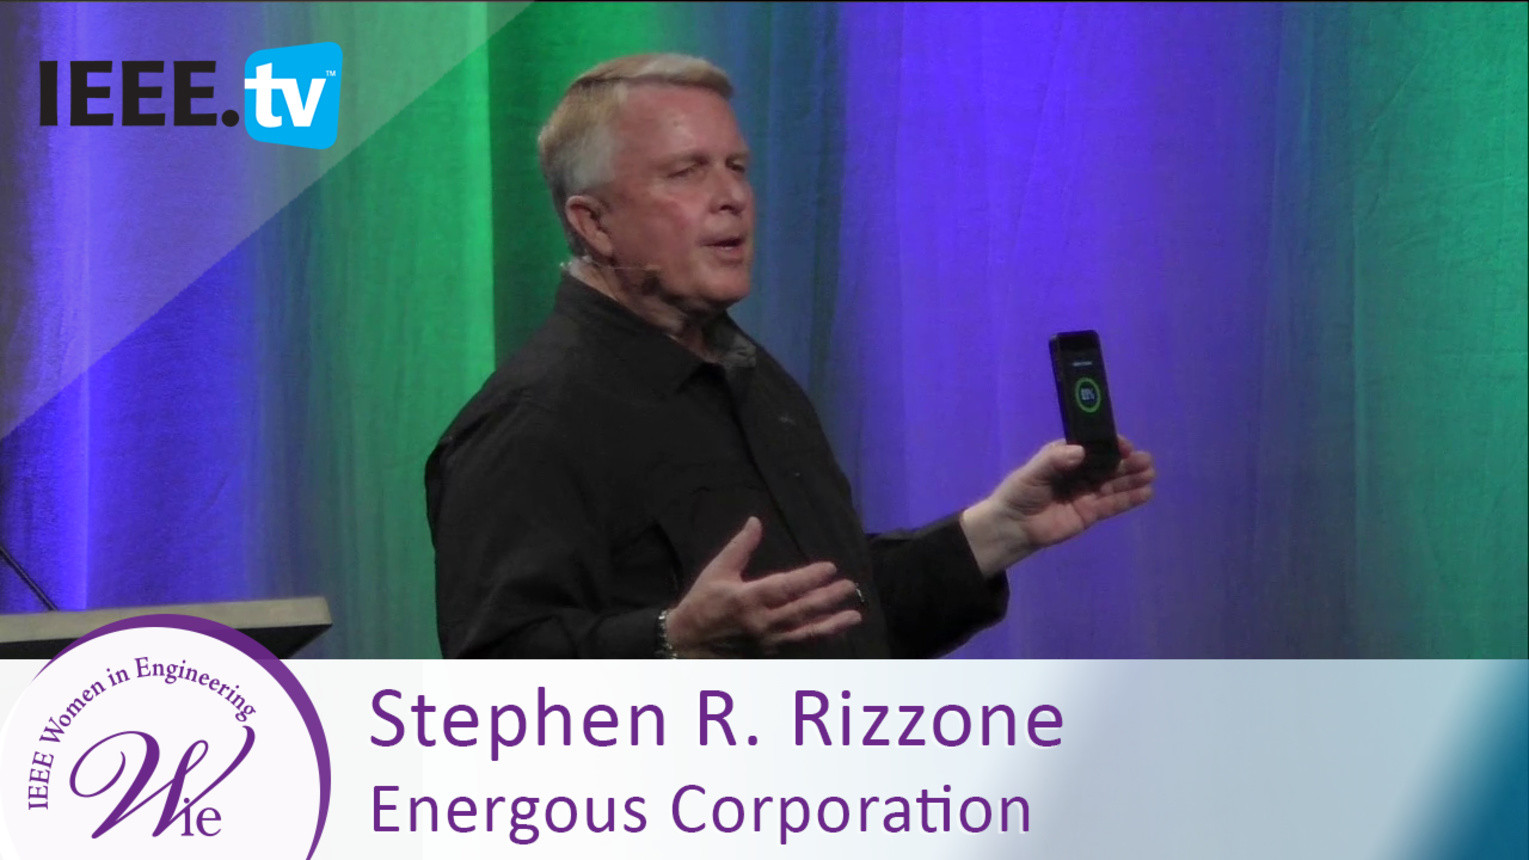 Energous Corporation President Stephen Rizzone demonstrates wireless mobile device charging - 2016 Women in Engineering Conference